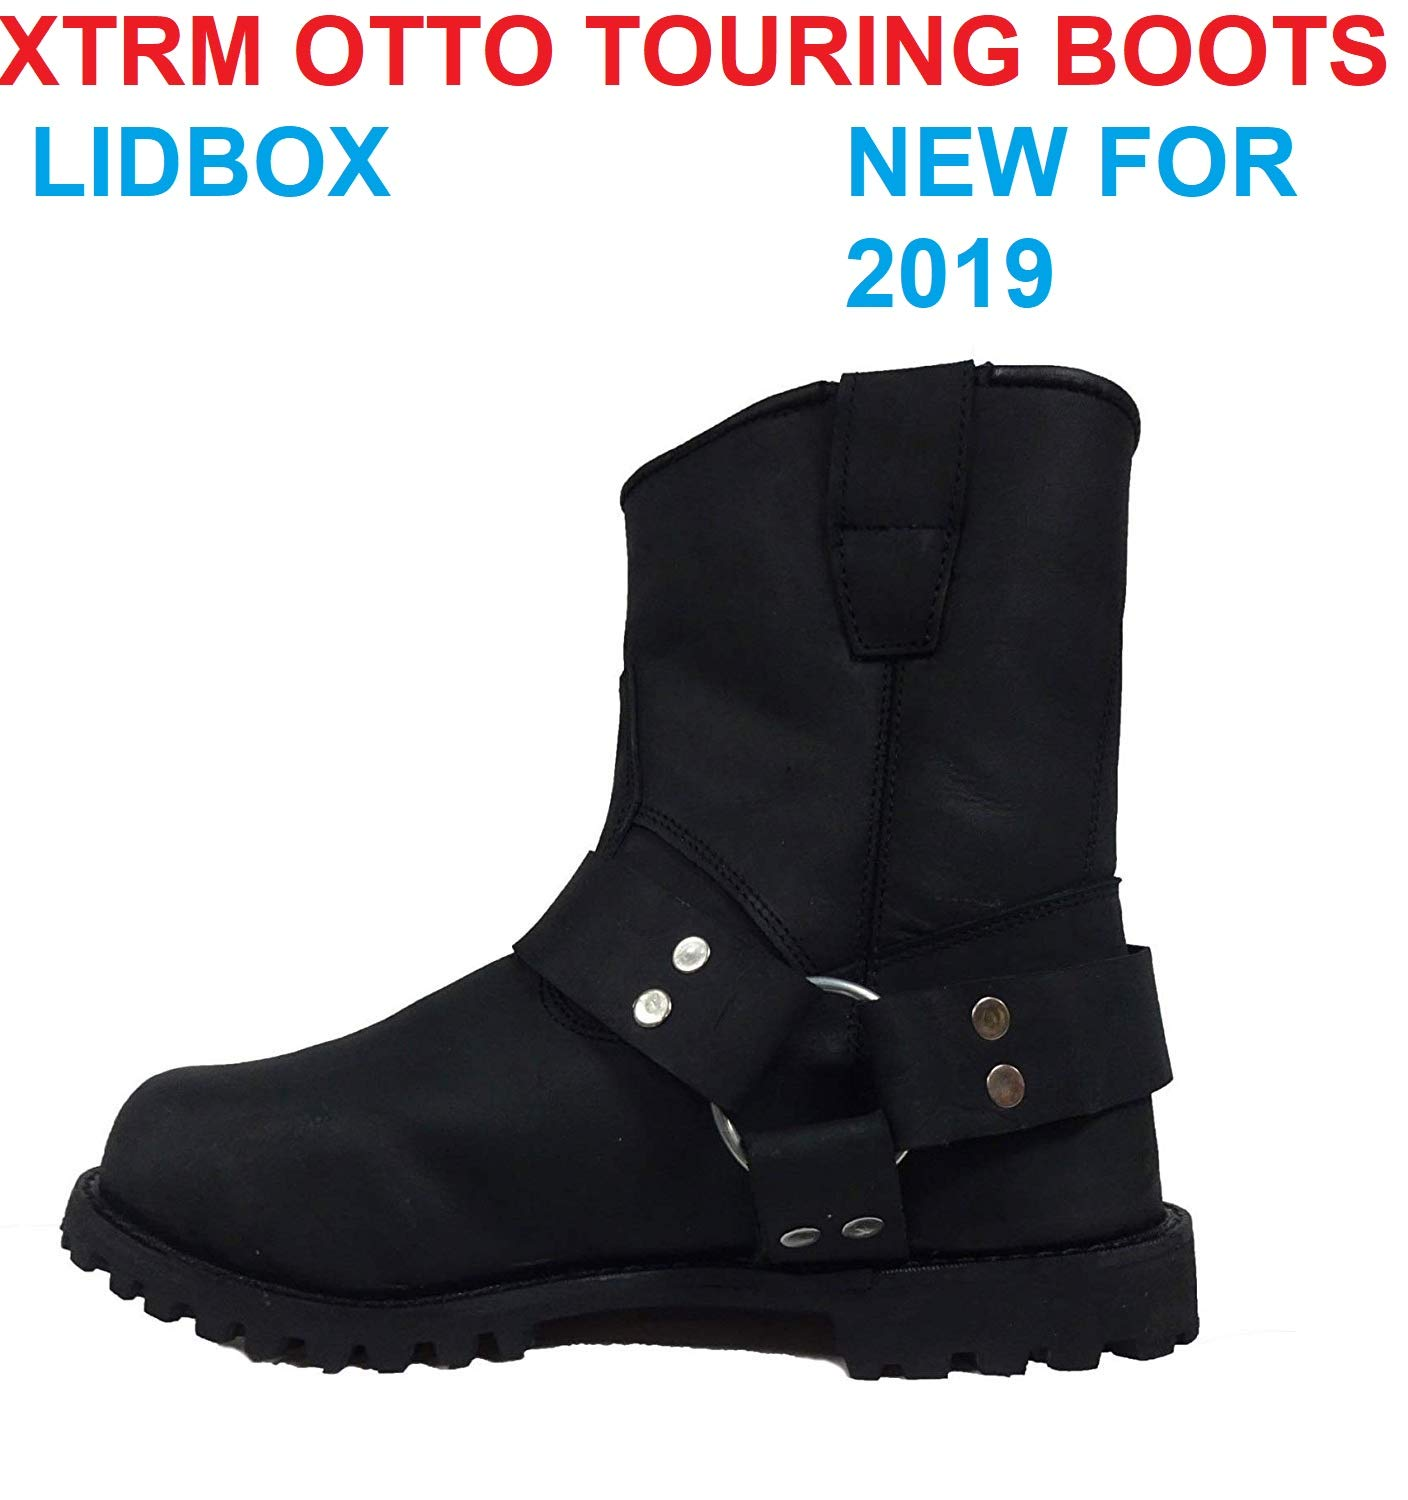 XTRM Adult Touring Otto Motorcycle Short Leather Boots New for 2019 Classic Harness Biker Boots for Men and Women